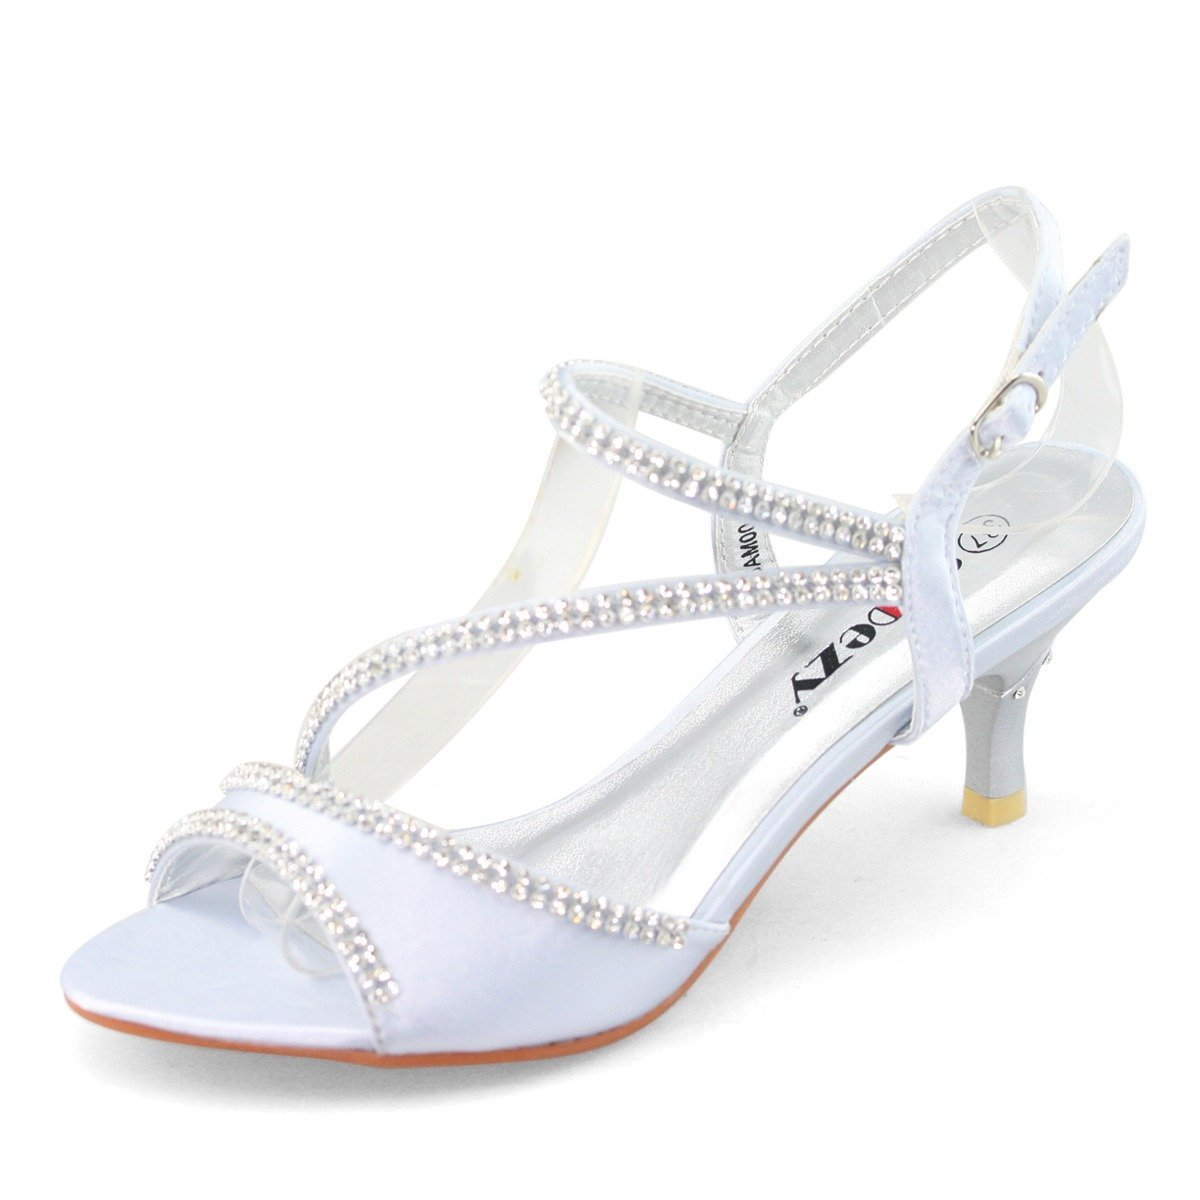 fd3735b31ce SHOEZY Ladies Satin Kitten Heels Dress Shoes Ankle Strap Xmas Party in  Silver Color